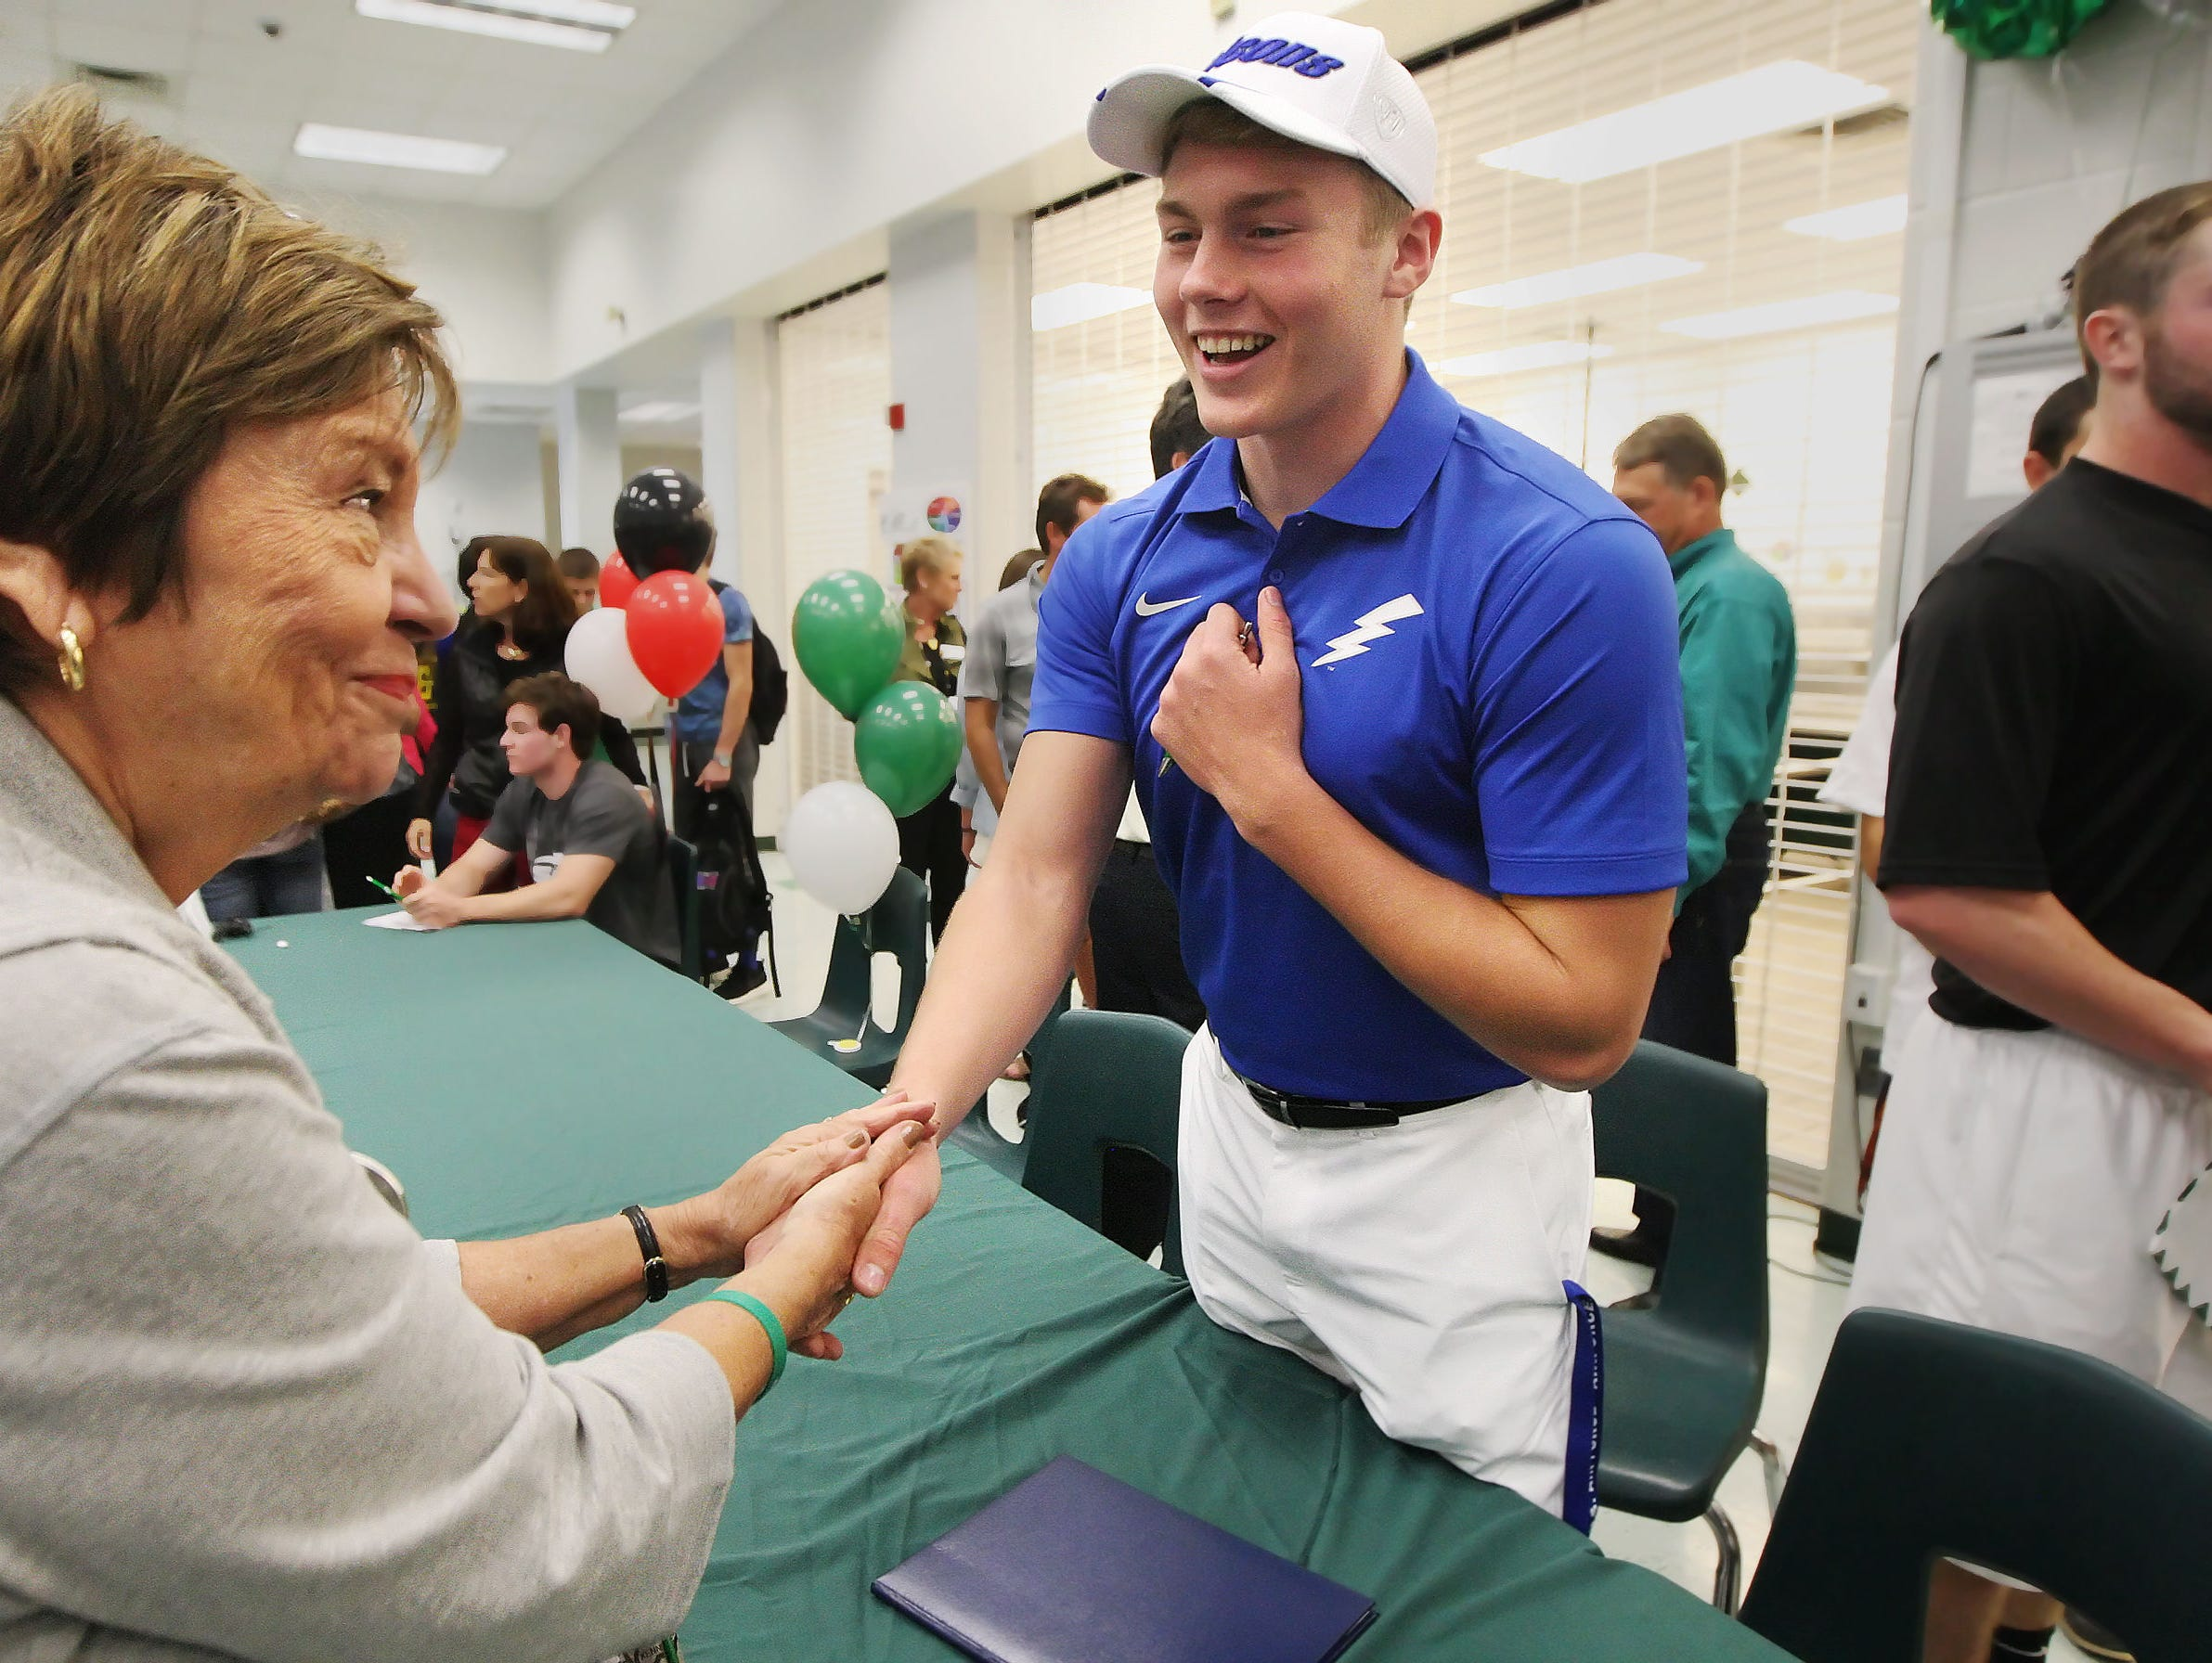 Margaret Sirianni, left, congratulates Fort Myers High School's Sam Turner after he signed a National Letter of Intent on Wednesday at Fort Myers High School. Turner signed to play football at the United States Air Force Academy.